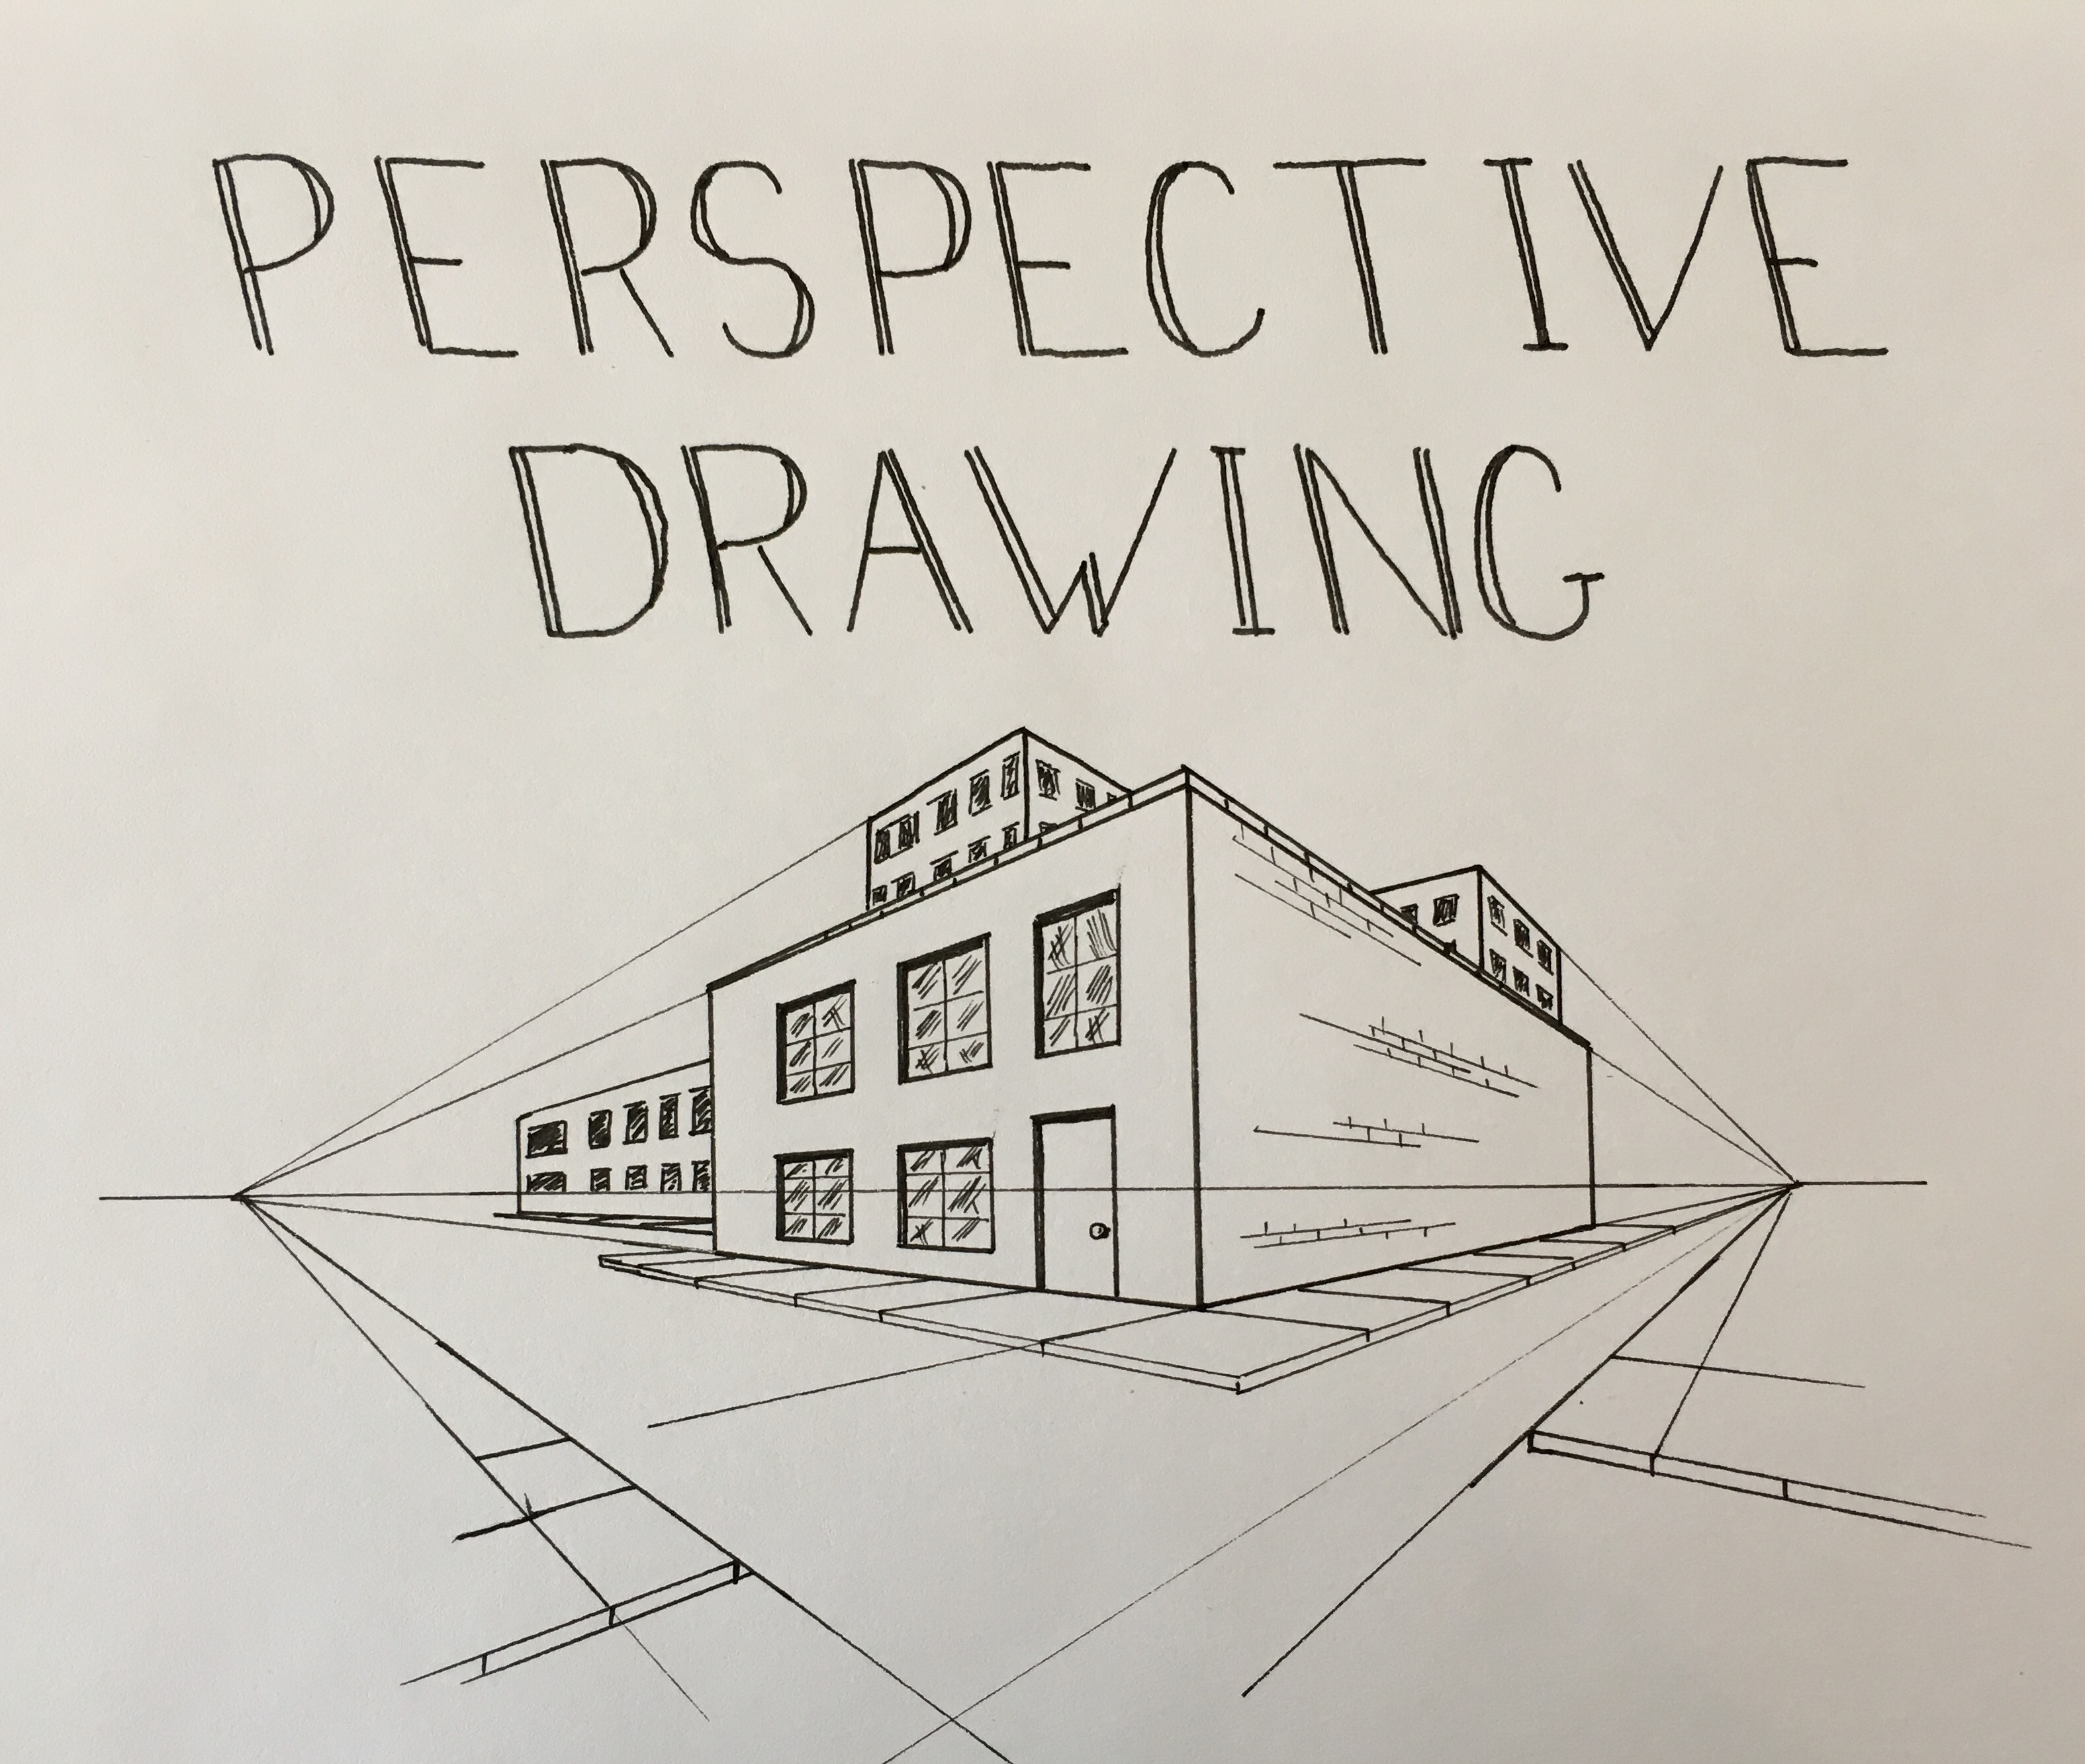 Perspective drawing made easy i fine art class